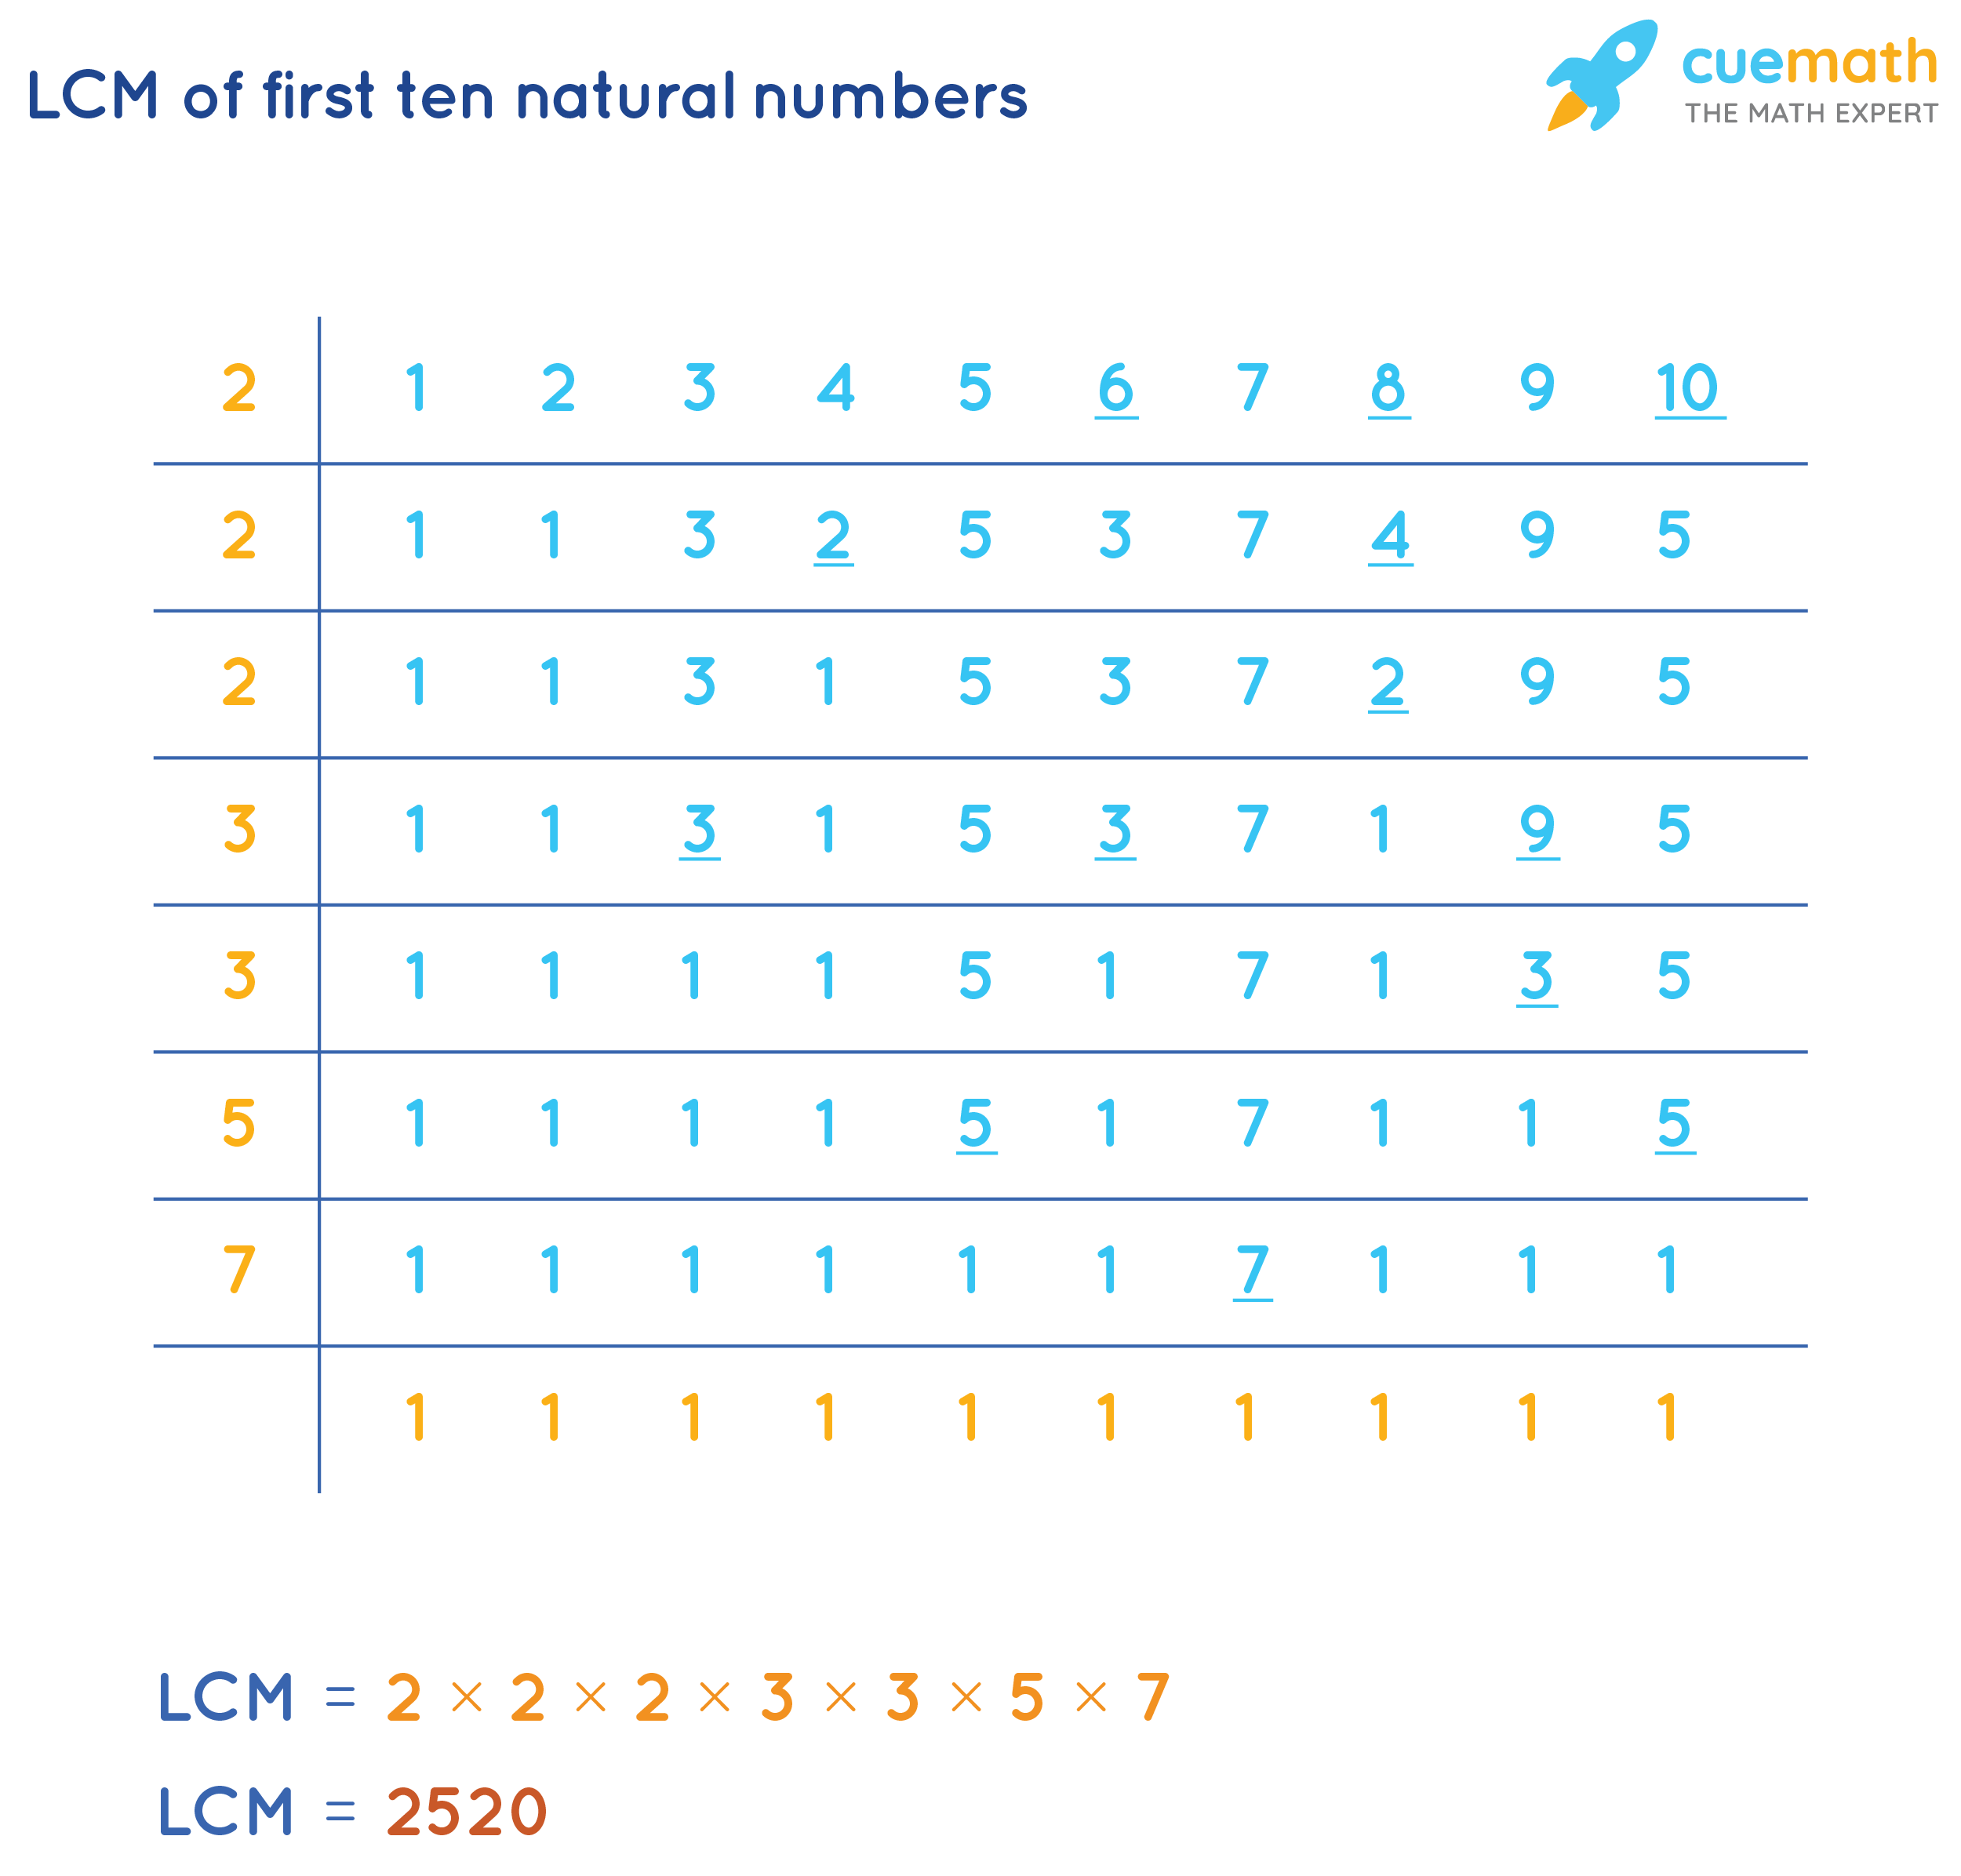 LCM of the first 10 natural numbers